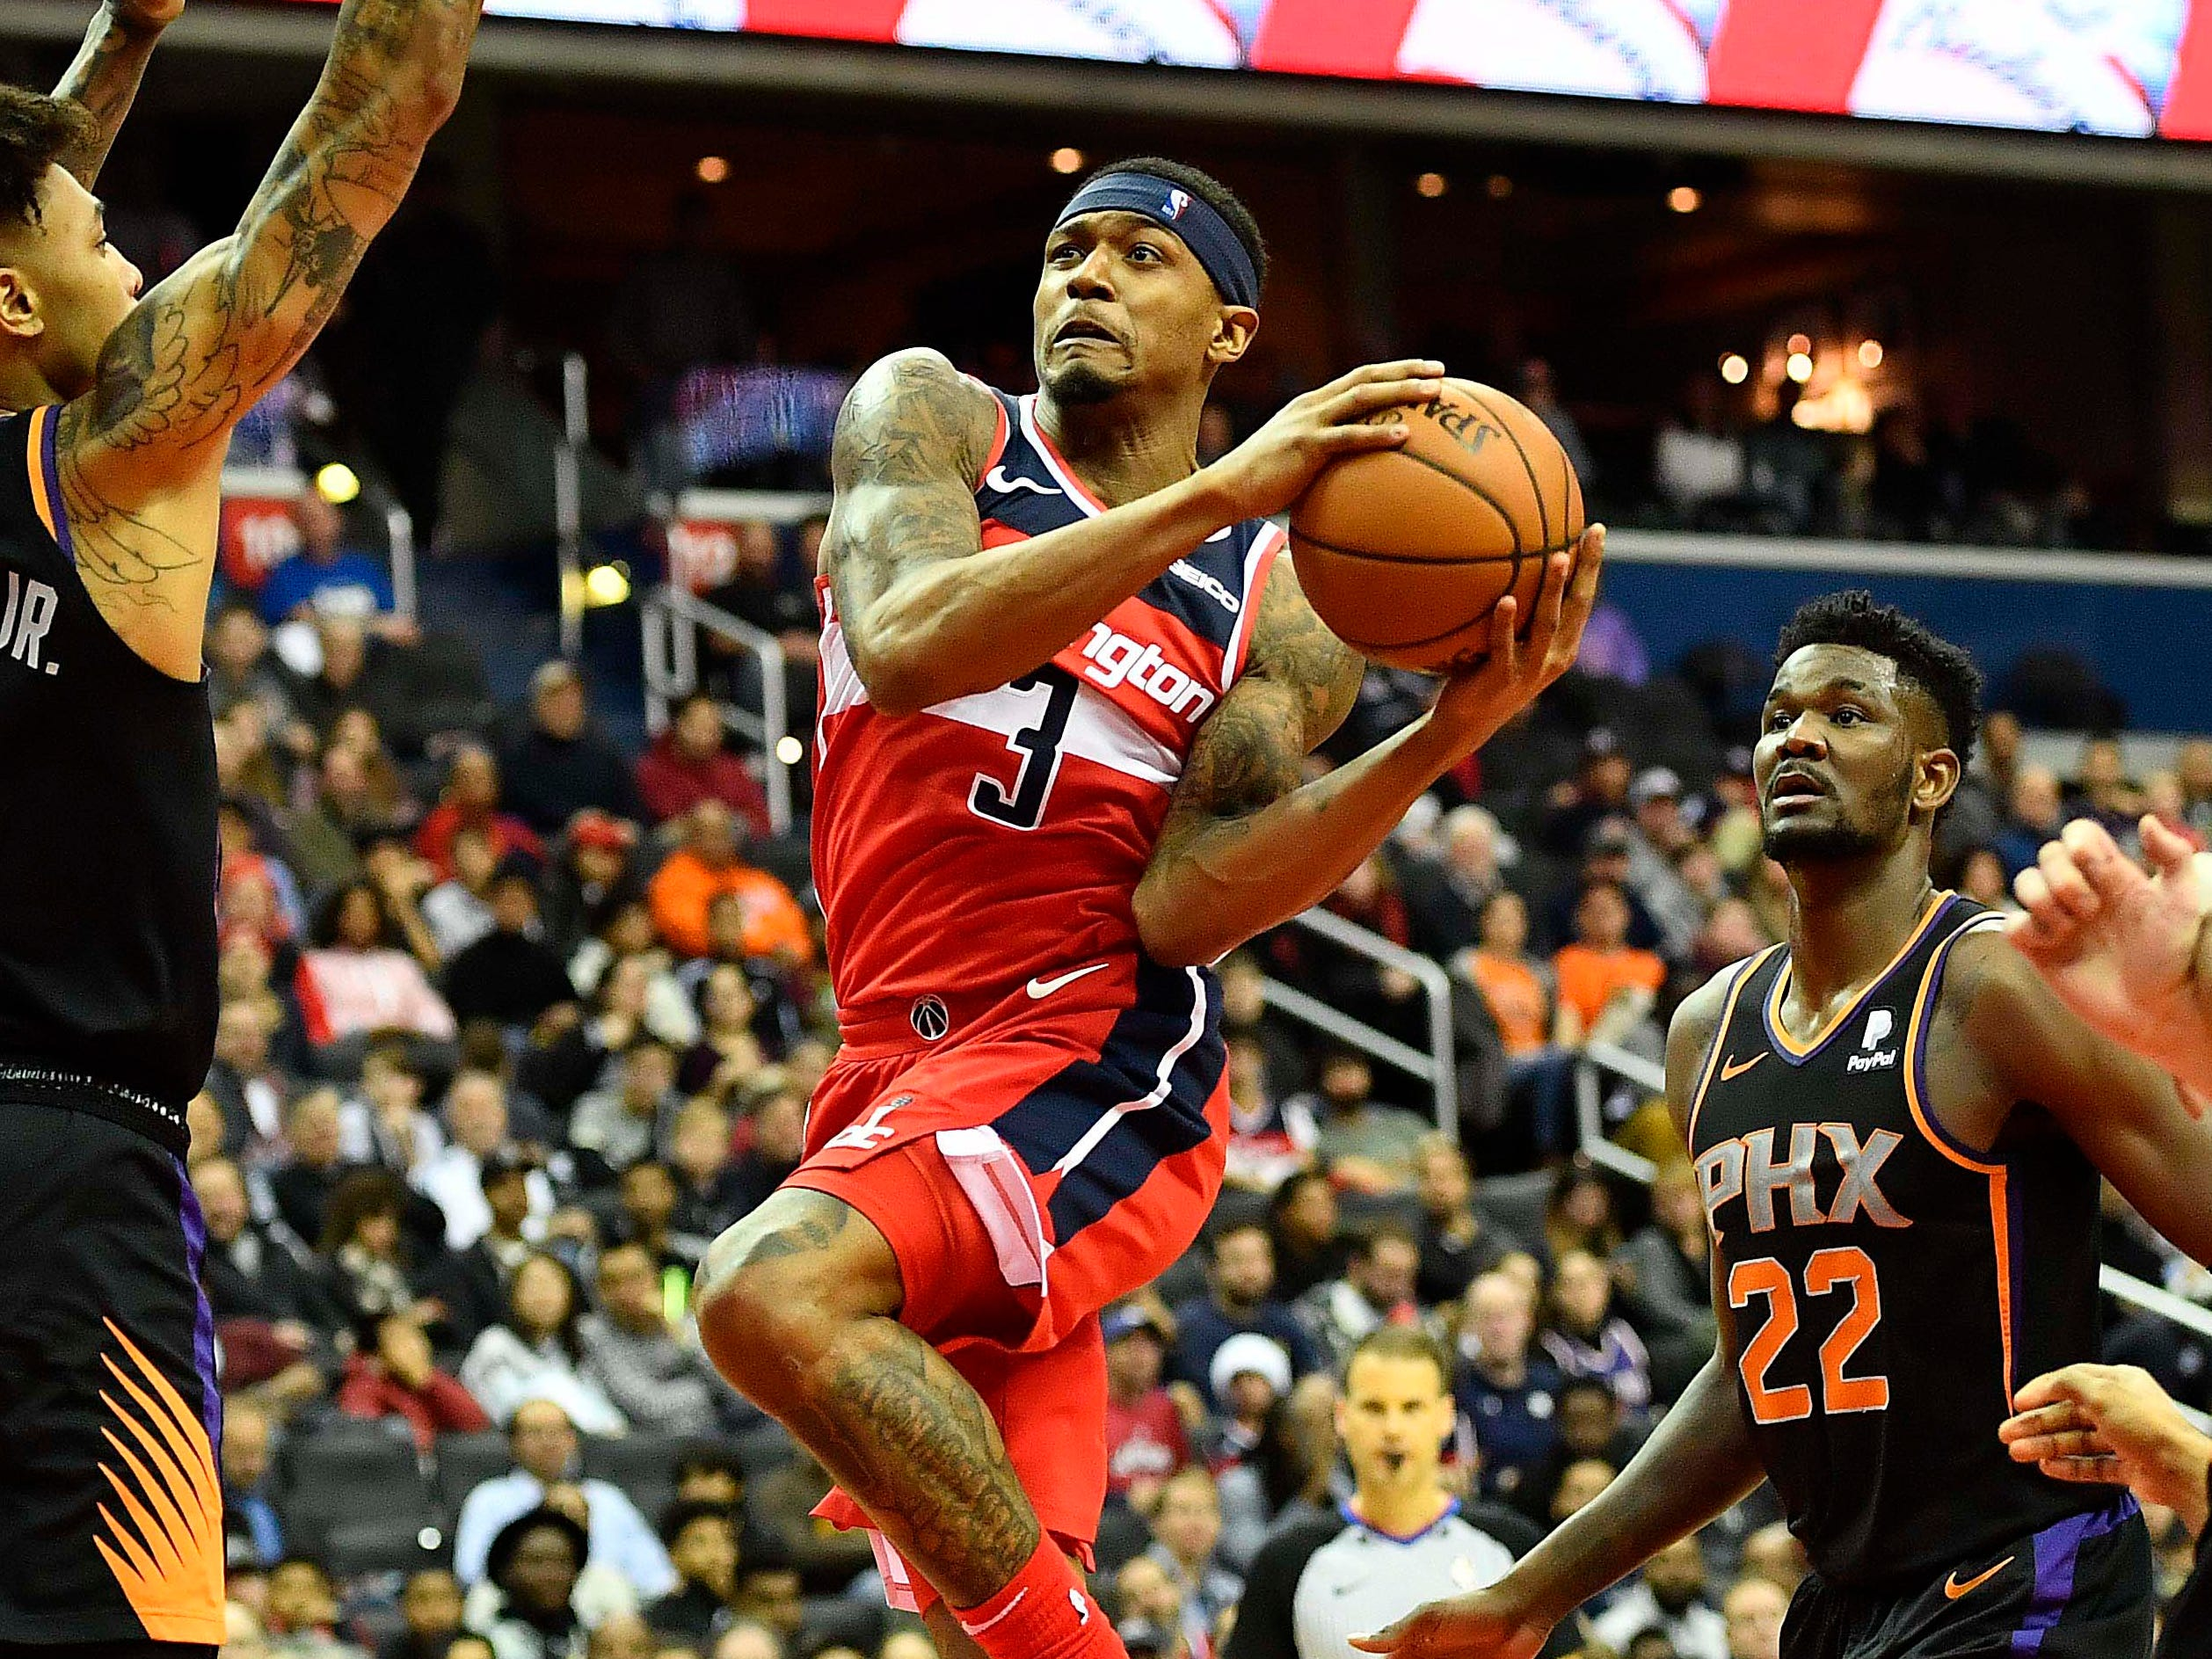 33. Bradley Beal, Wizards (Dec. 22): 40 points, 15 assists, 11 rebounds in 149-146 win over Suns.